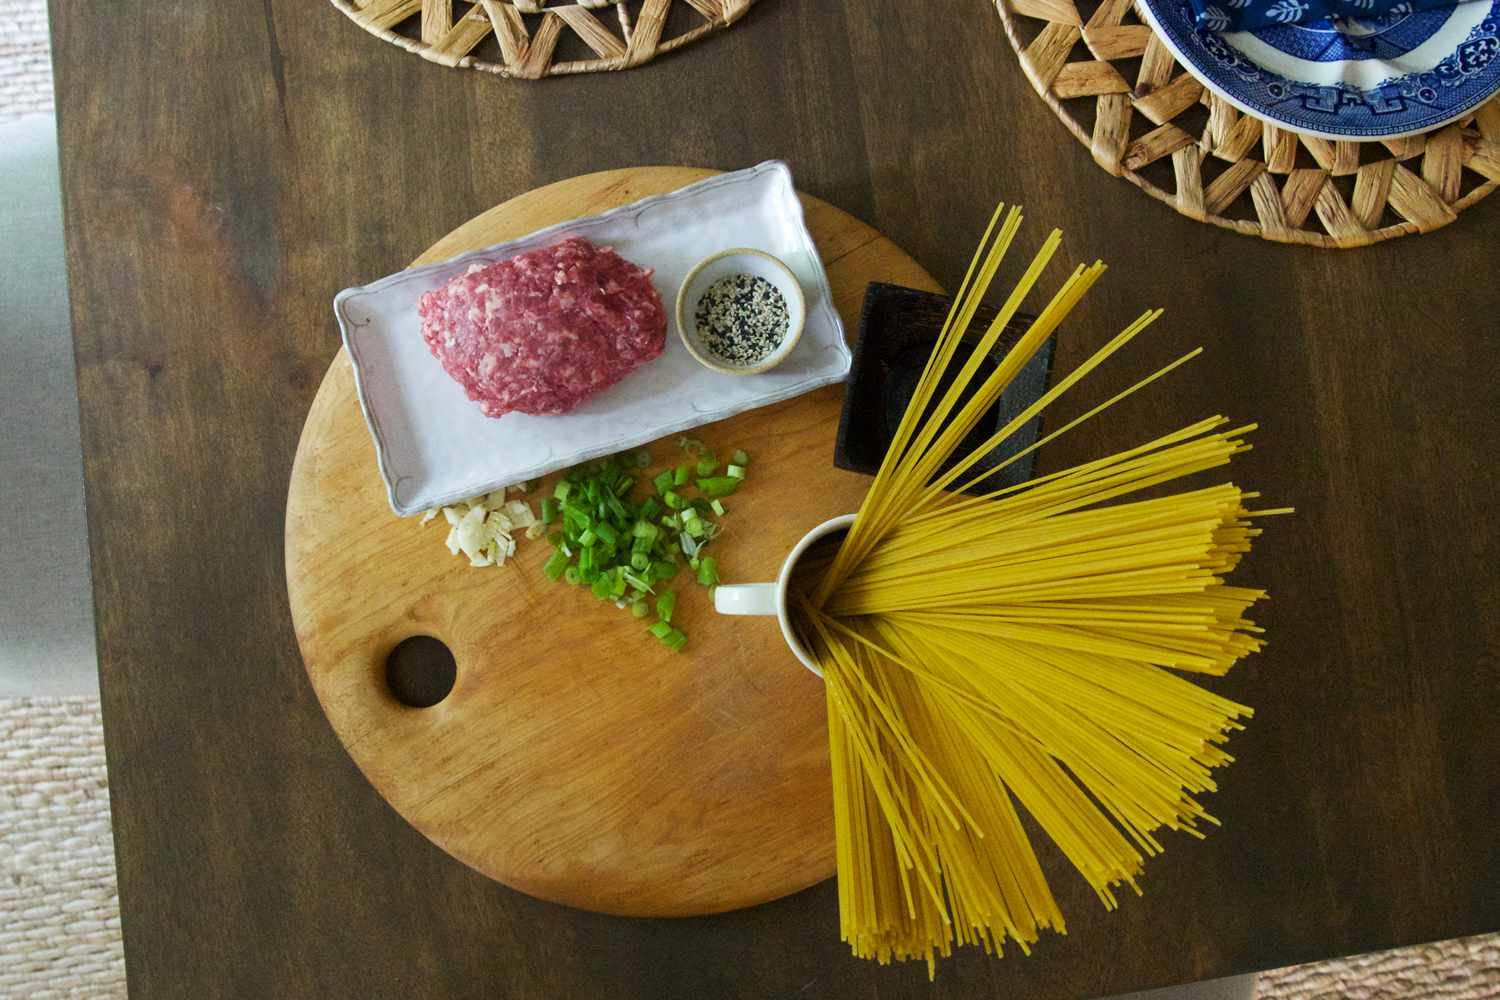 Dinnerly ingredients on a table